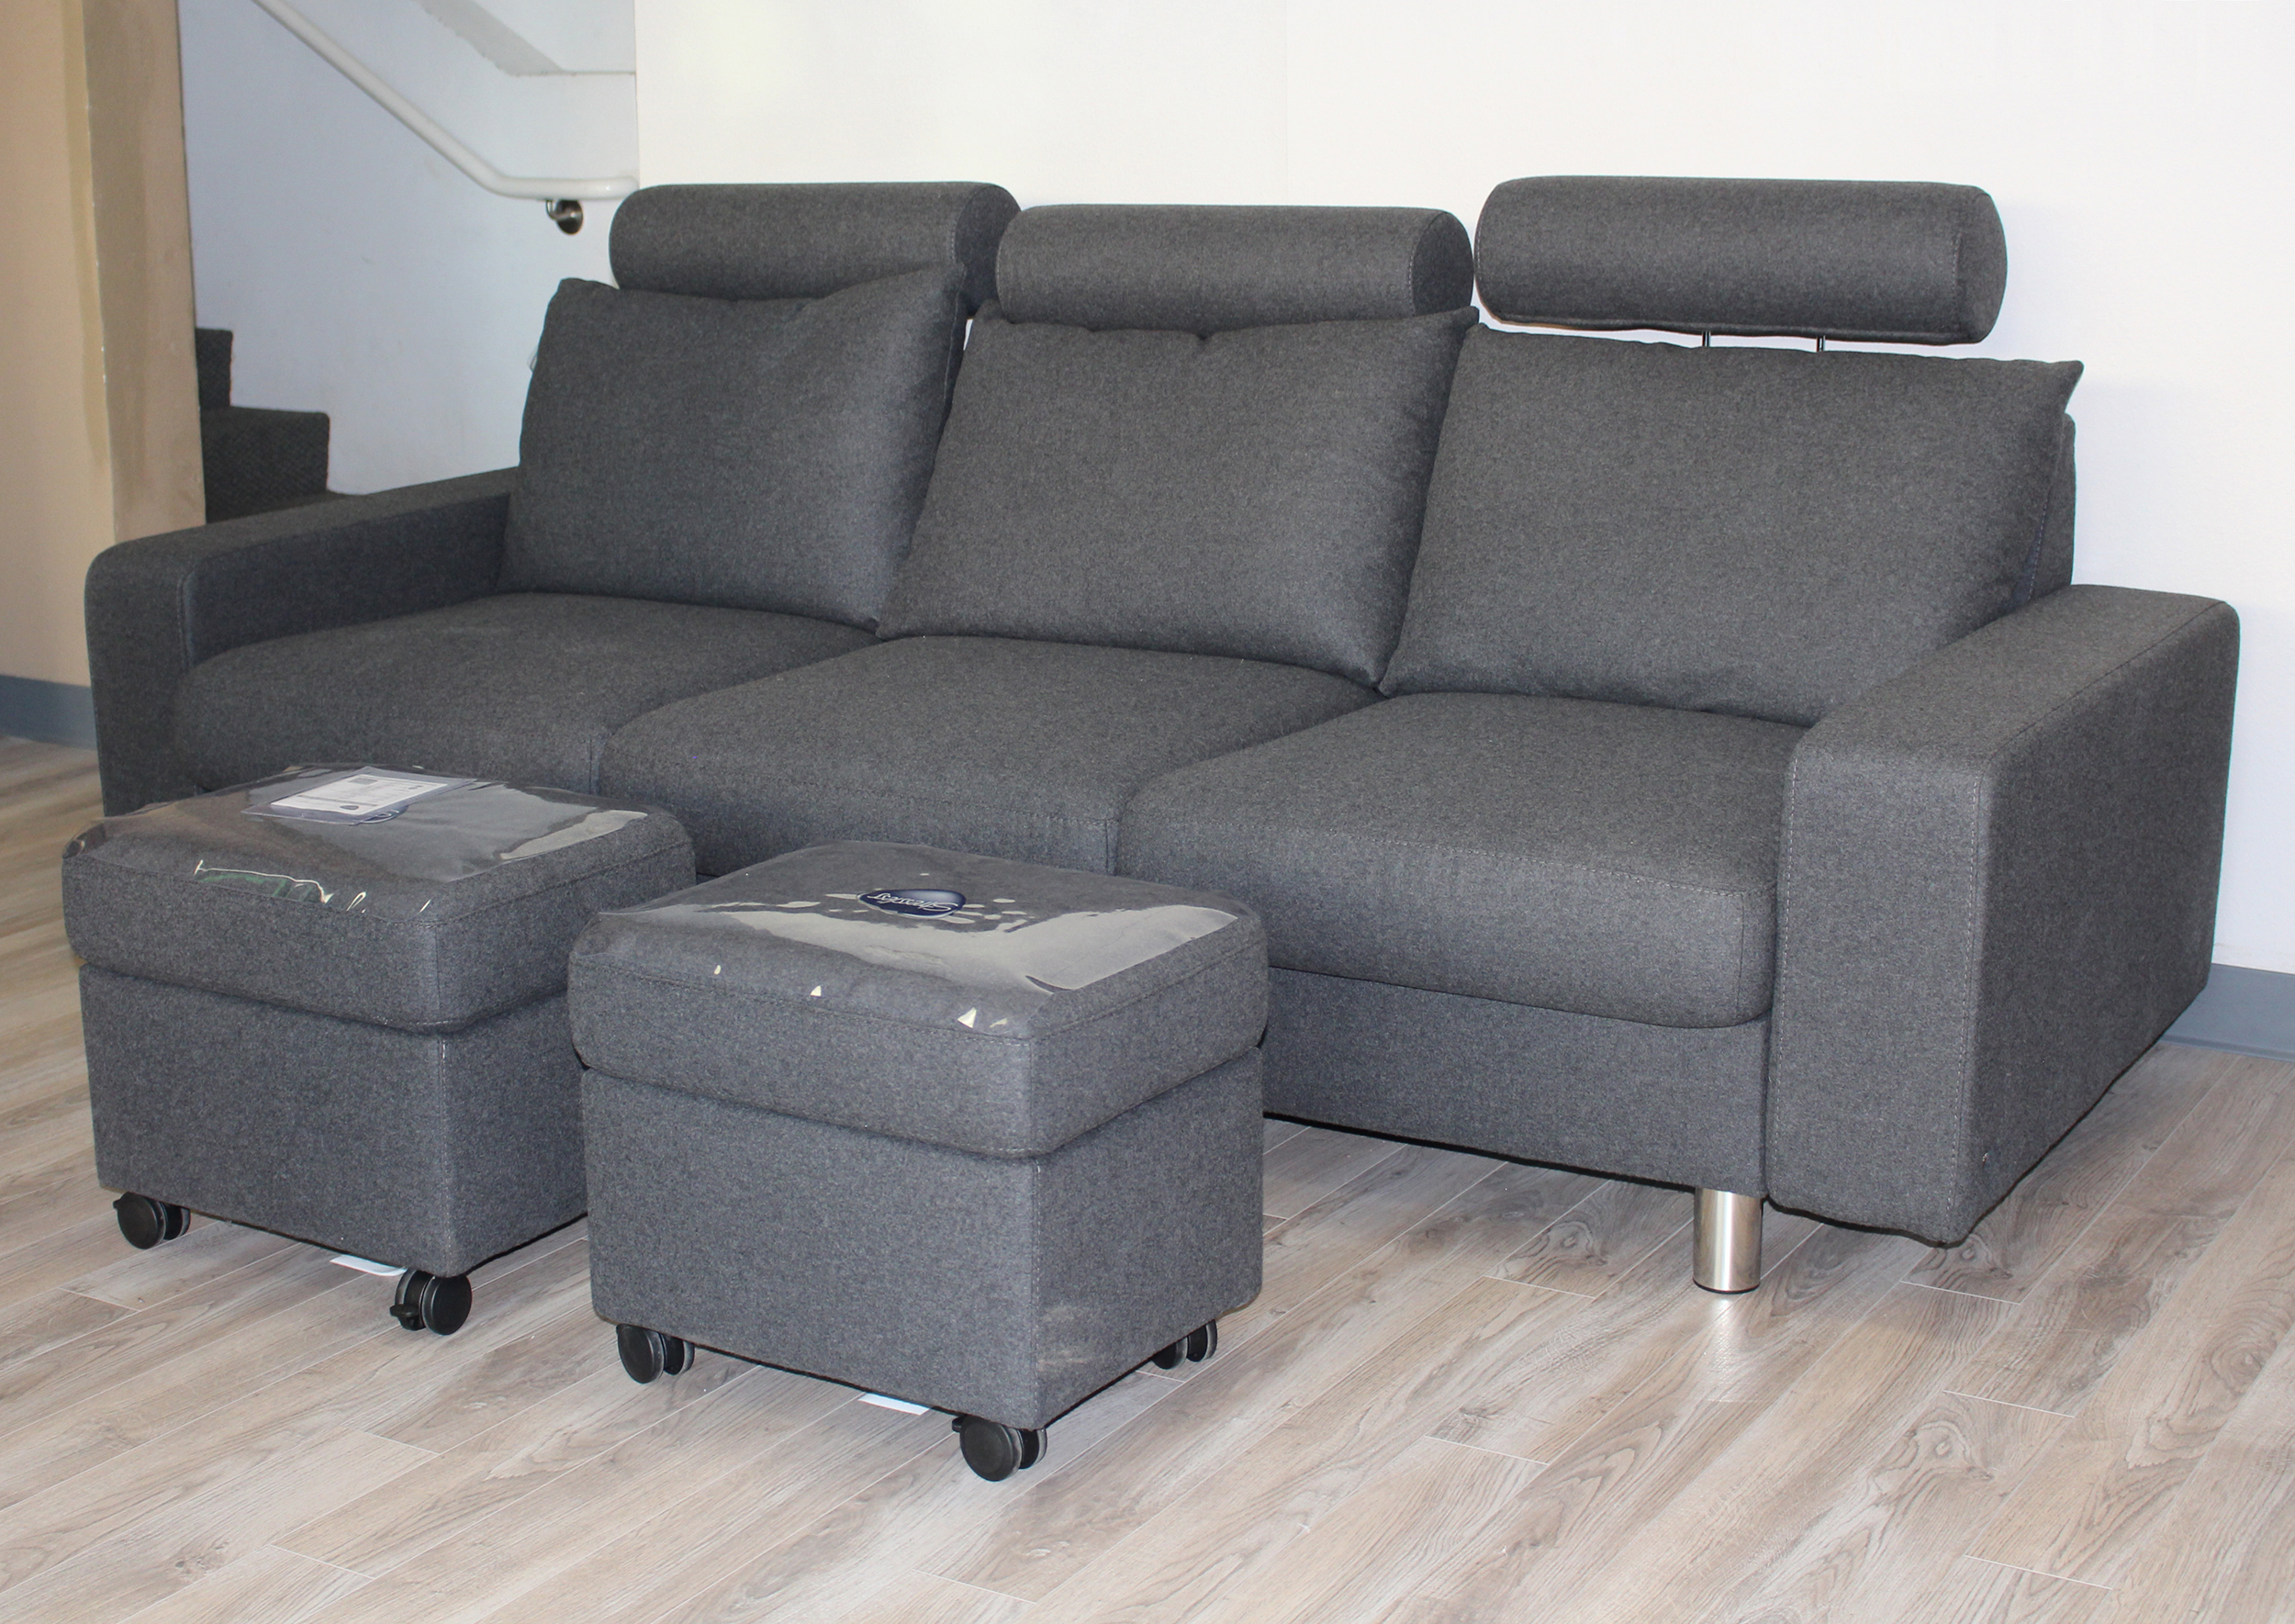 Stressless Sofa E200 Stressless E200 3 Seat Sofa In Calido Dark Grey Fabric By